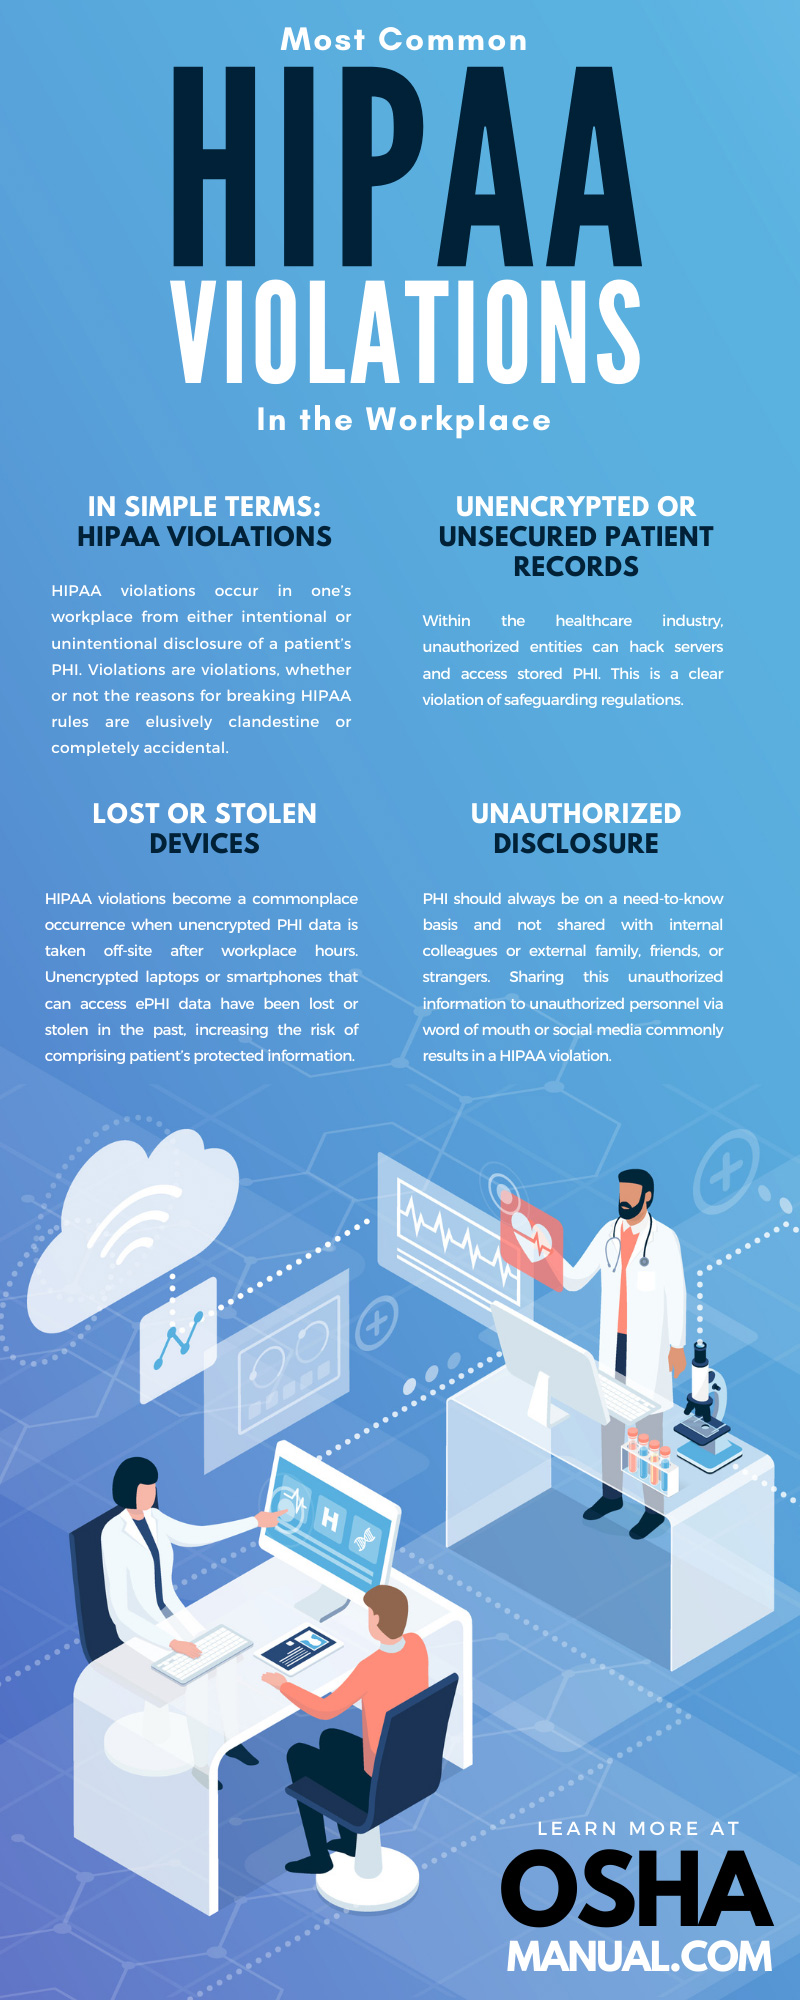 Most Common HIPAA Violations in the Workplace